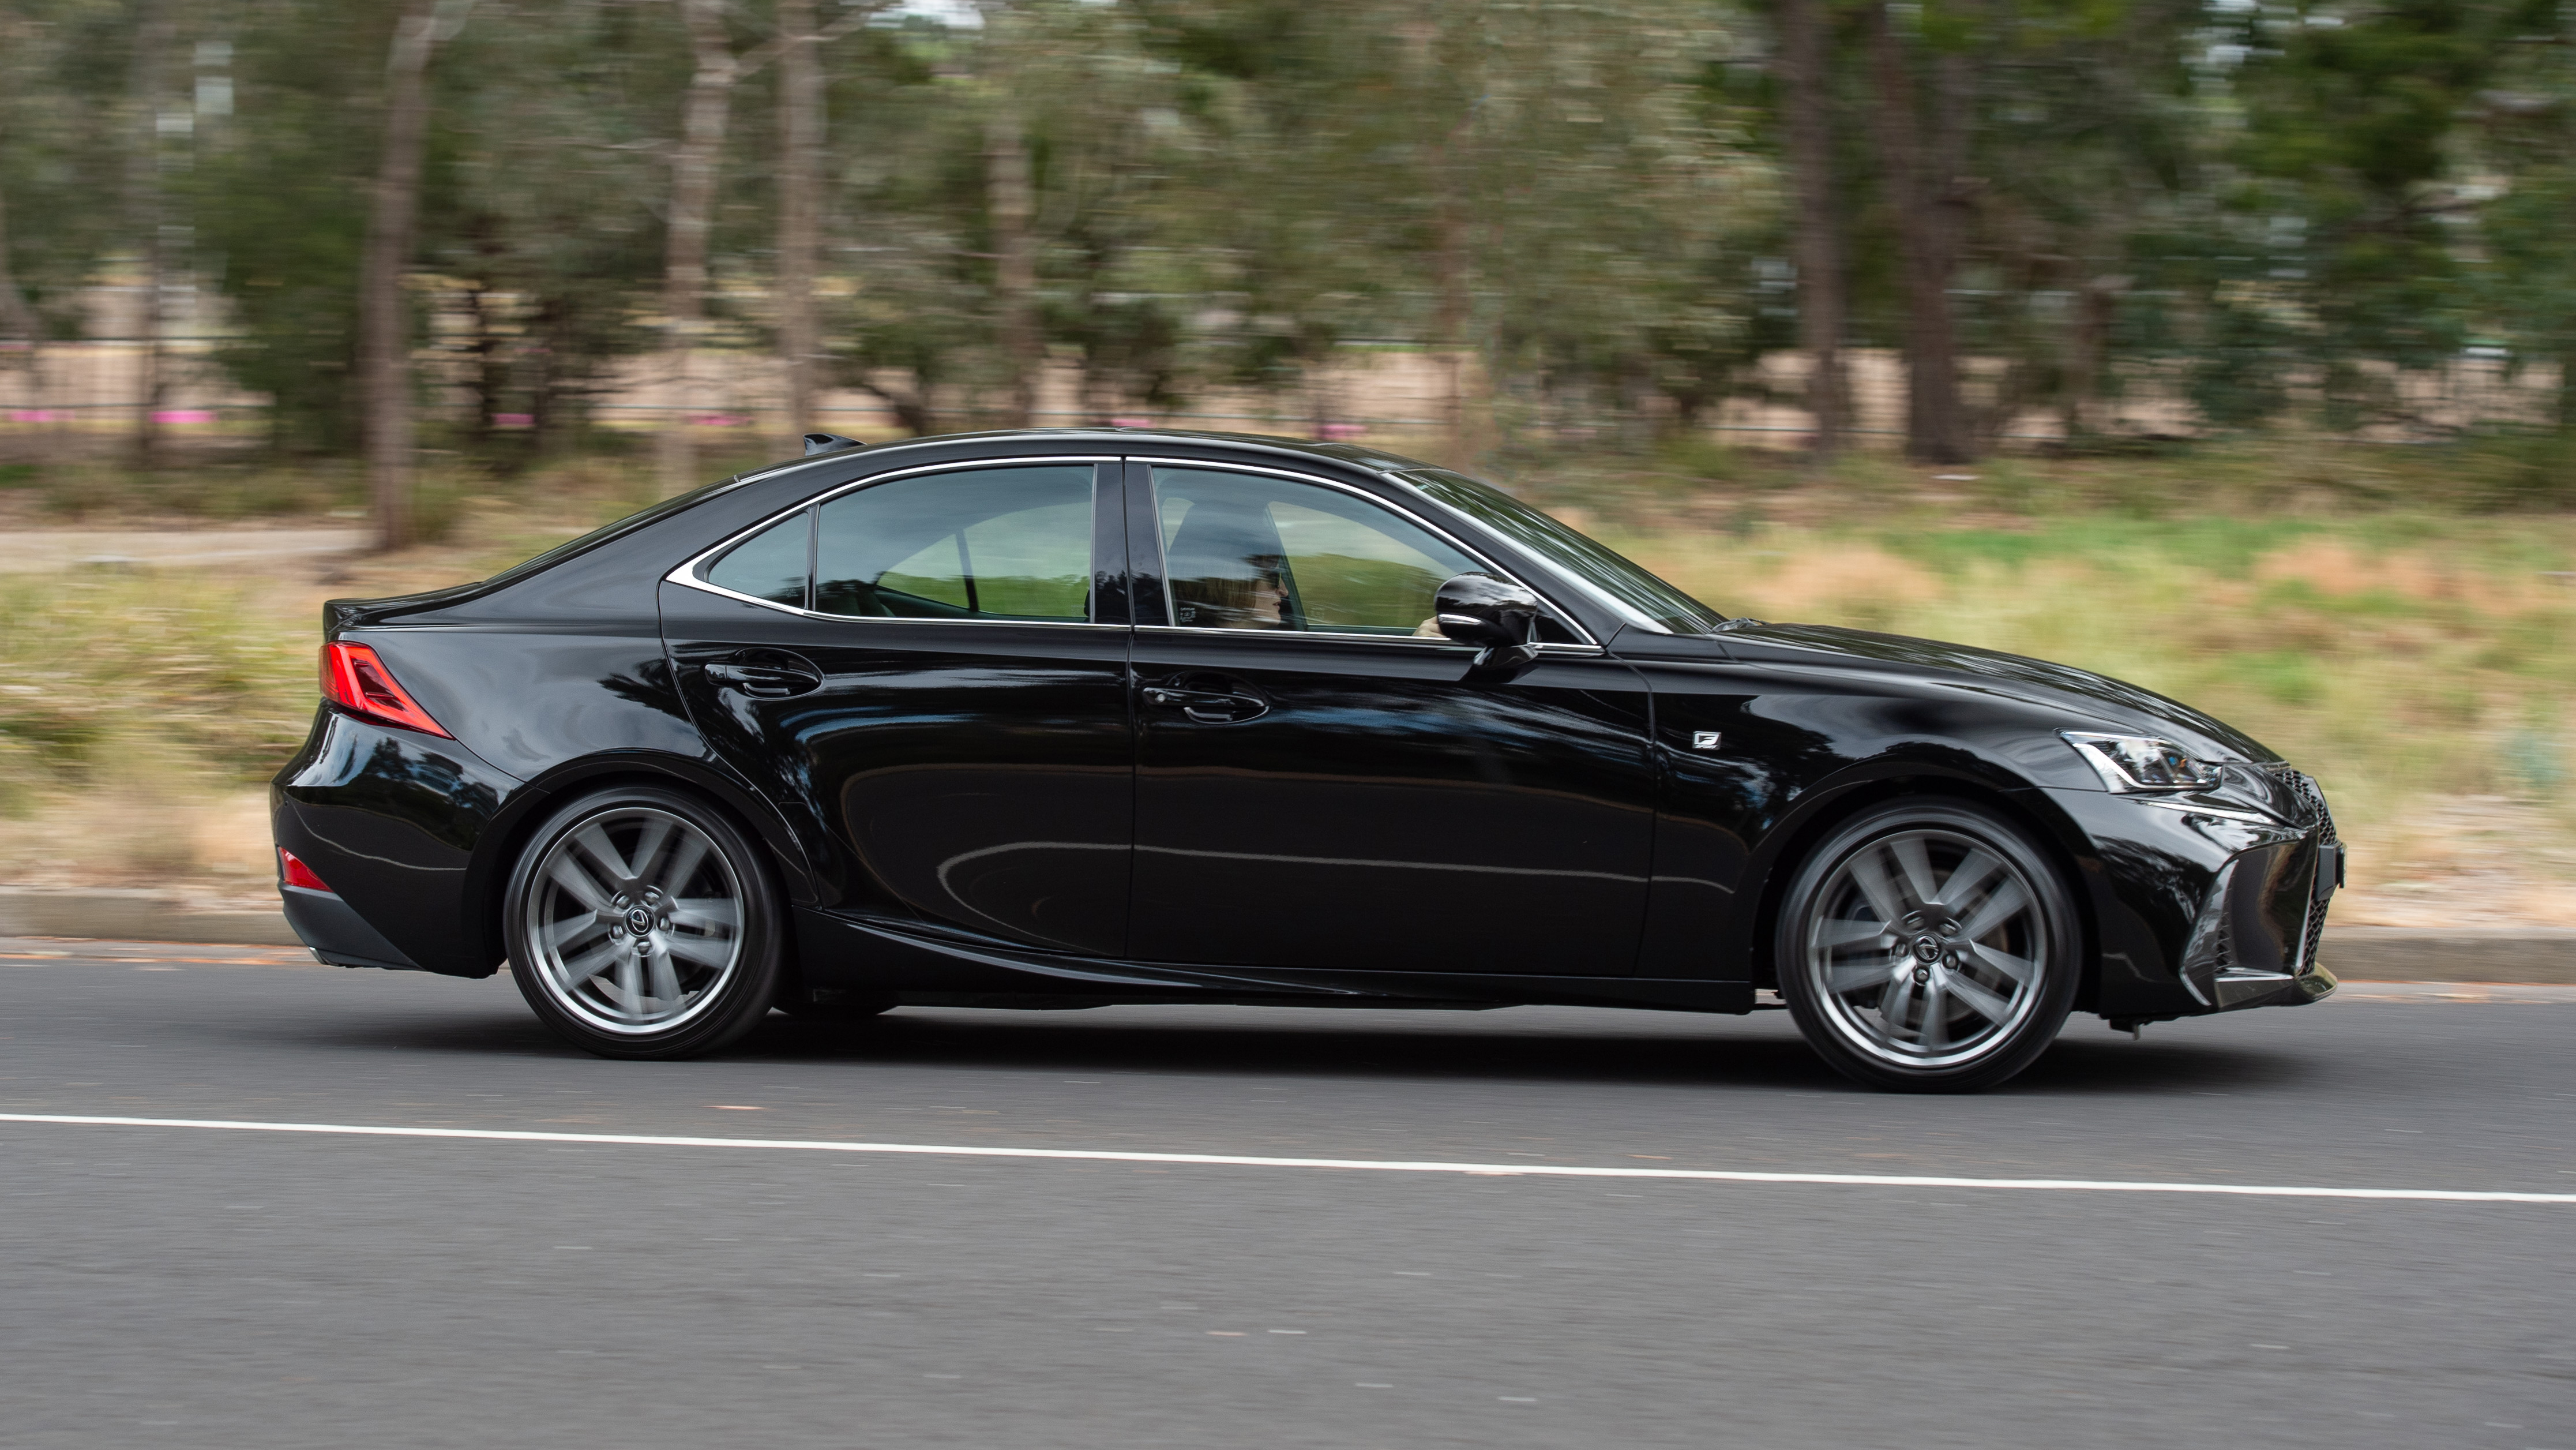 2018 Lexus IS350 F Sport review | CarAdvice